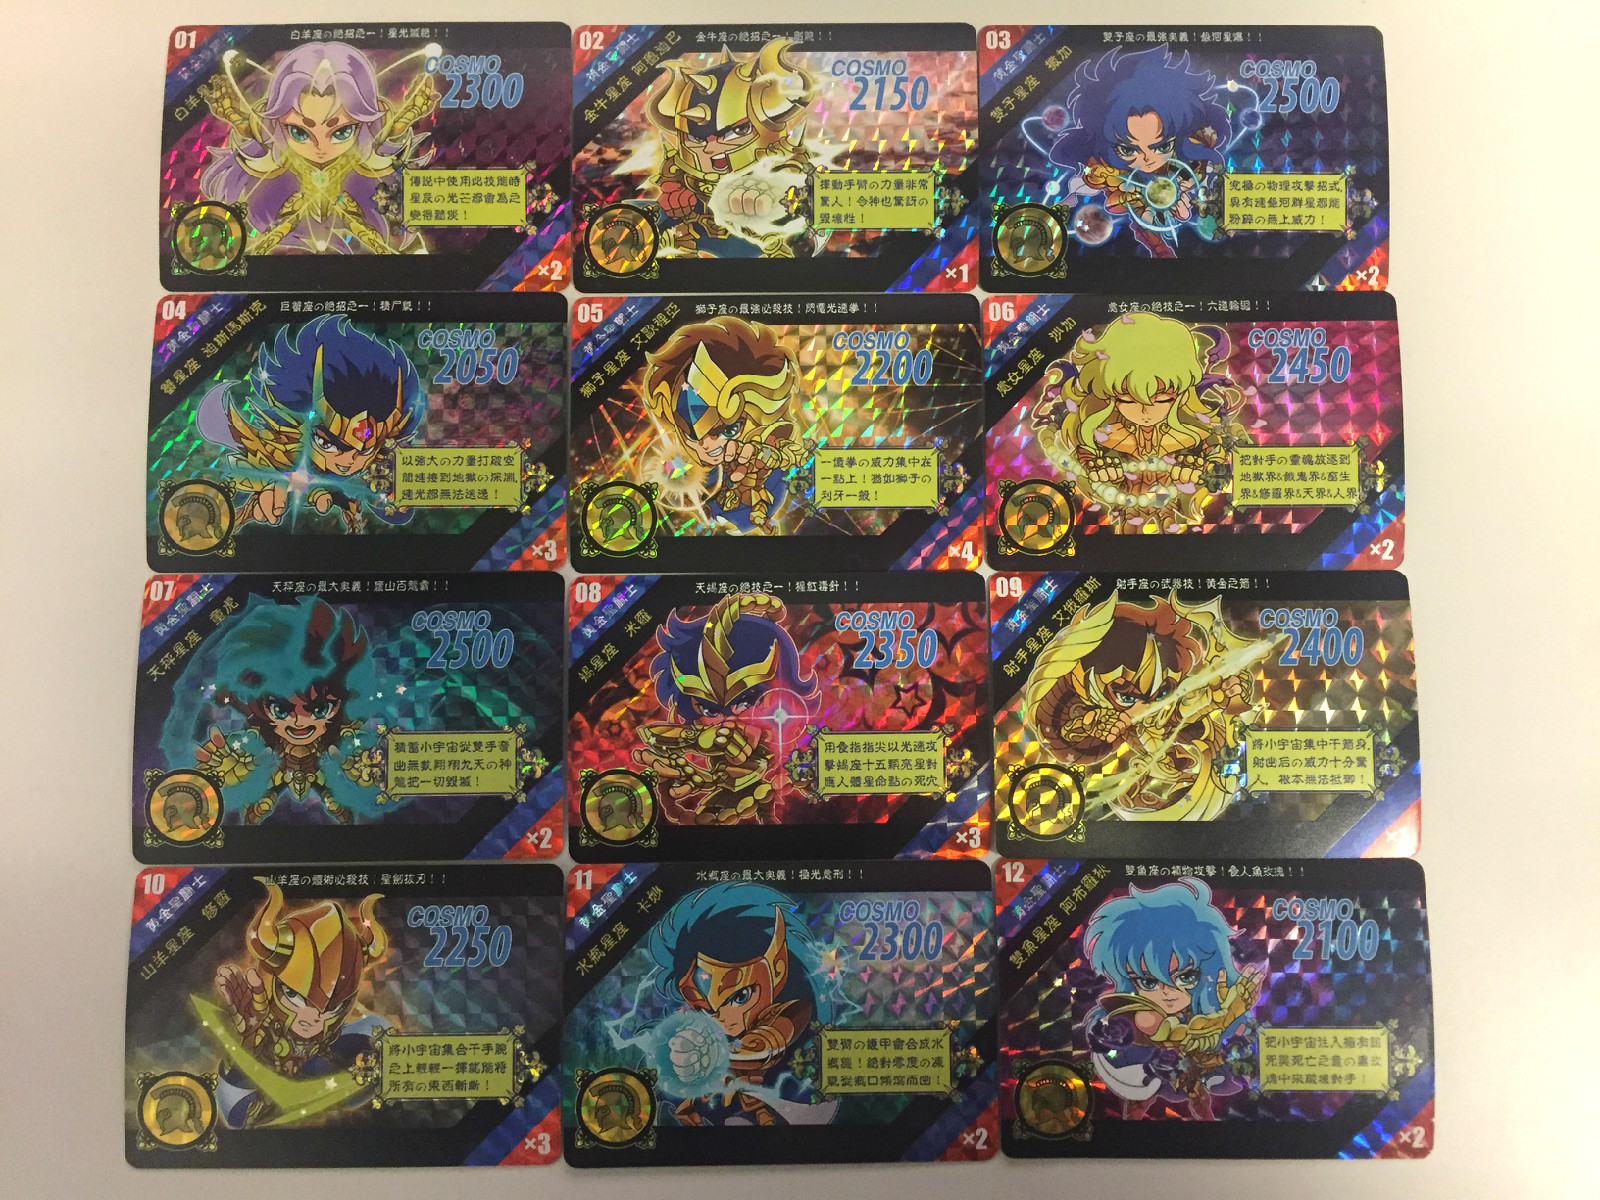 12pcs/set Saint Seiya Seitoushi Seiya Seiiki Juunikyuu Hen Awaken Q Version Toys Hobby Collectibles Game Collection Anime Cards